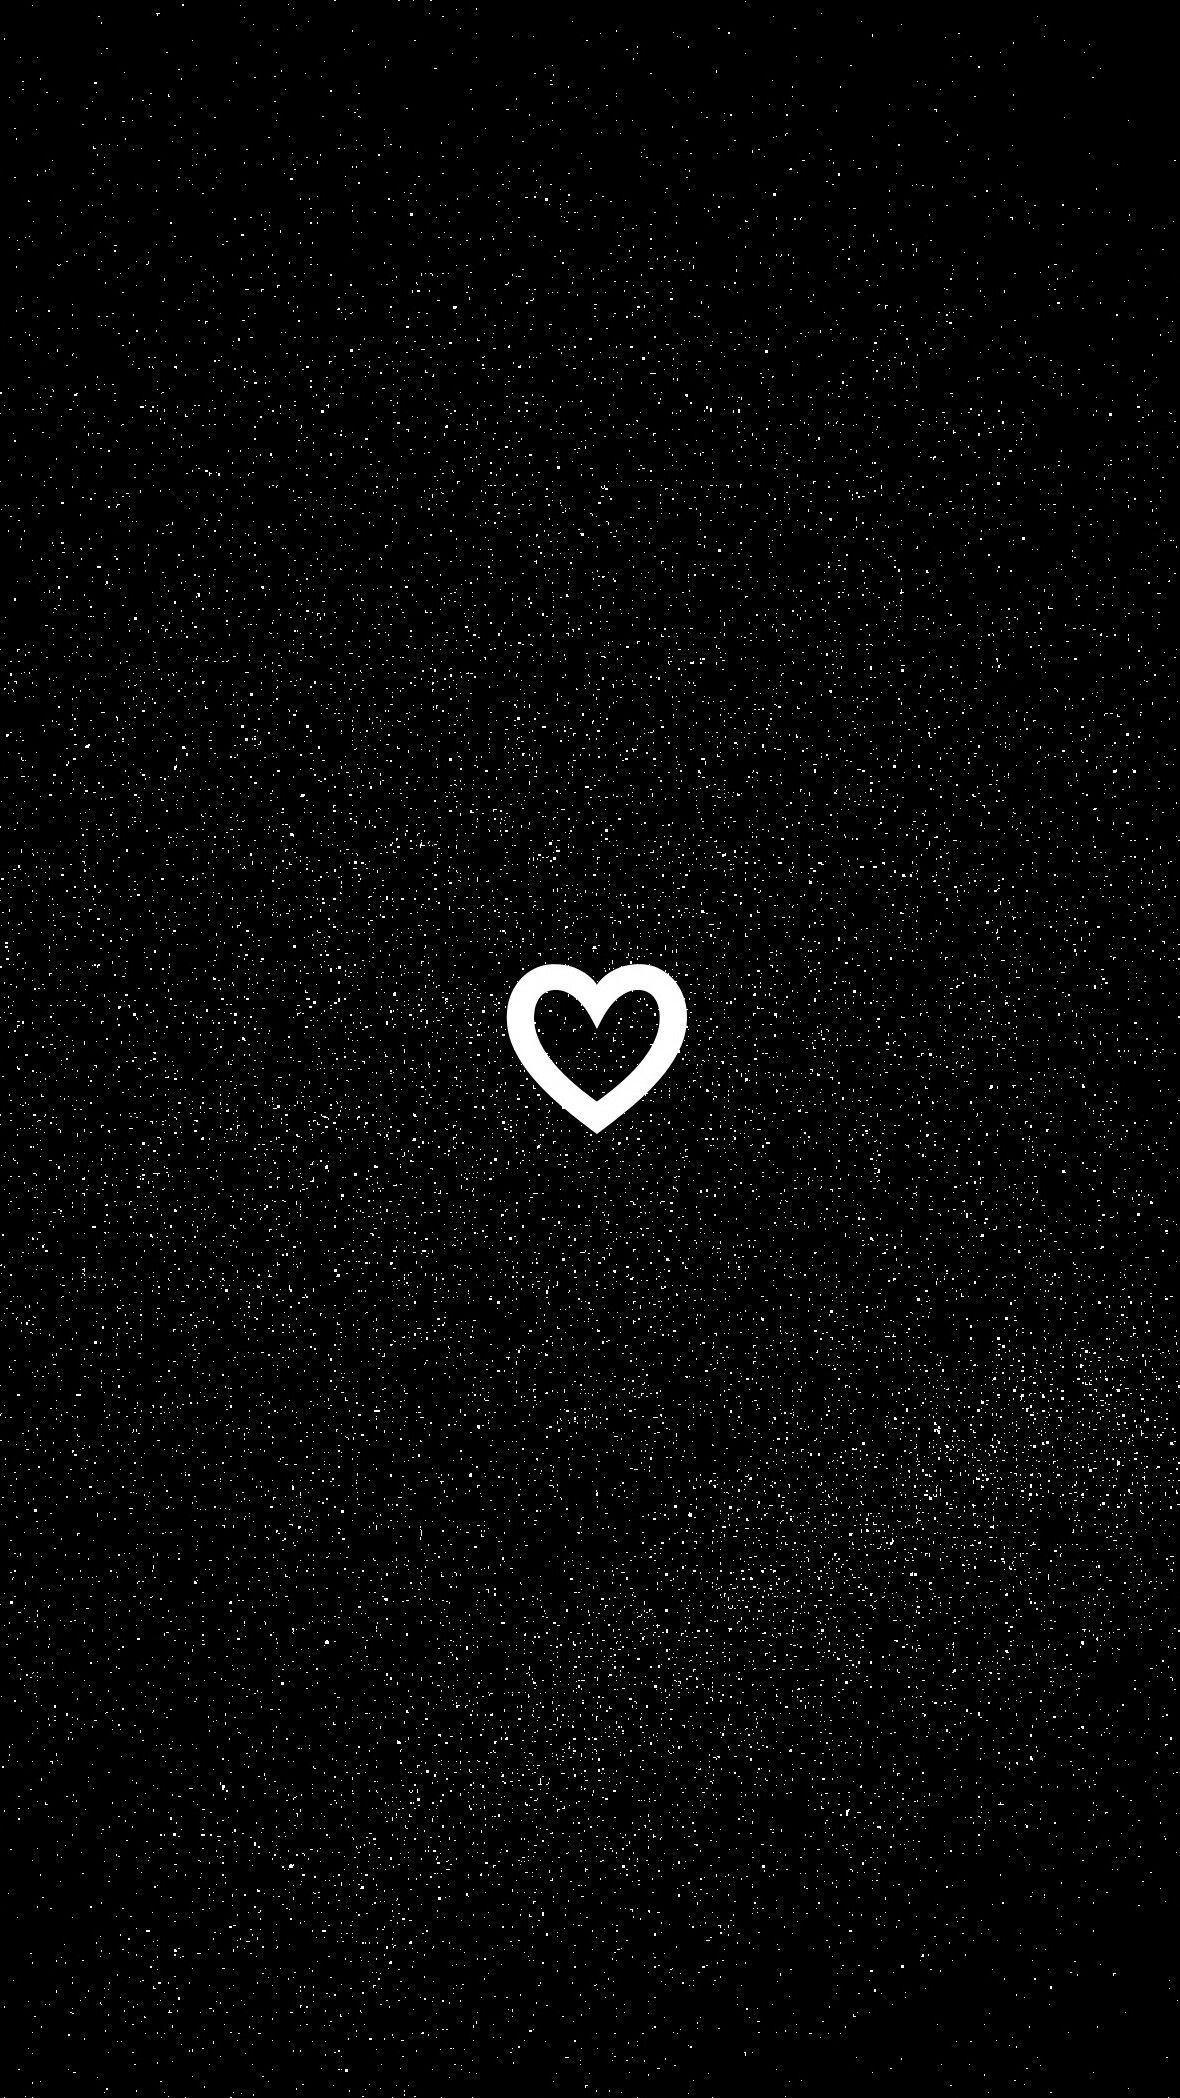 Dark Heart iPhone Wallpapers - Top Free Dark Heart iPhone ...